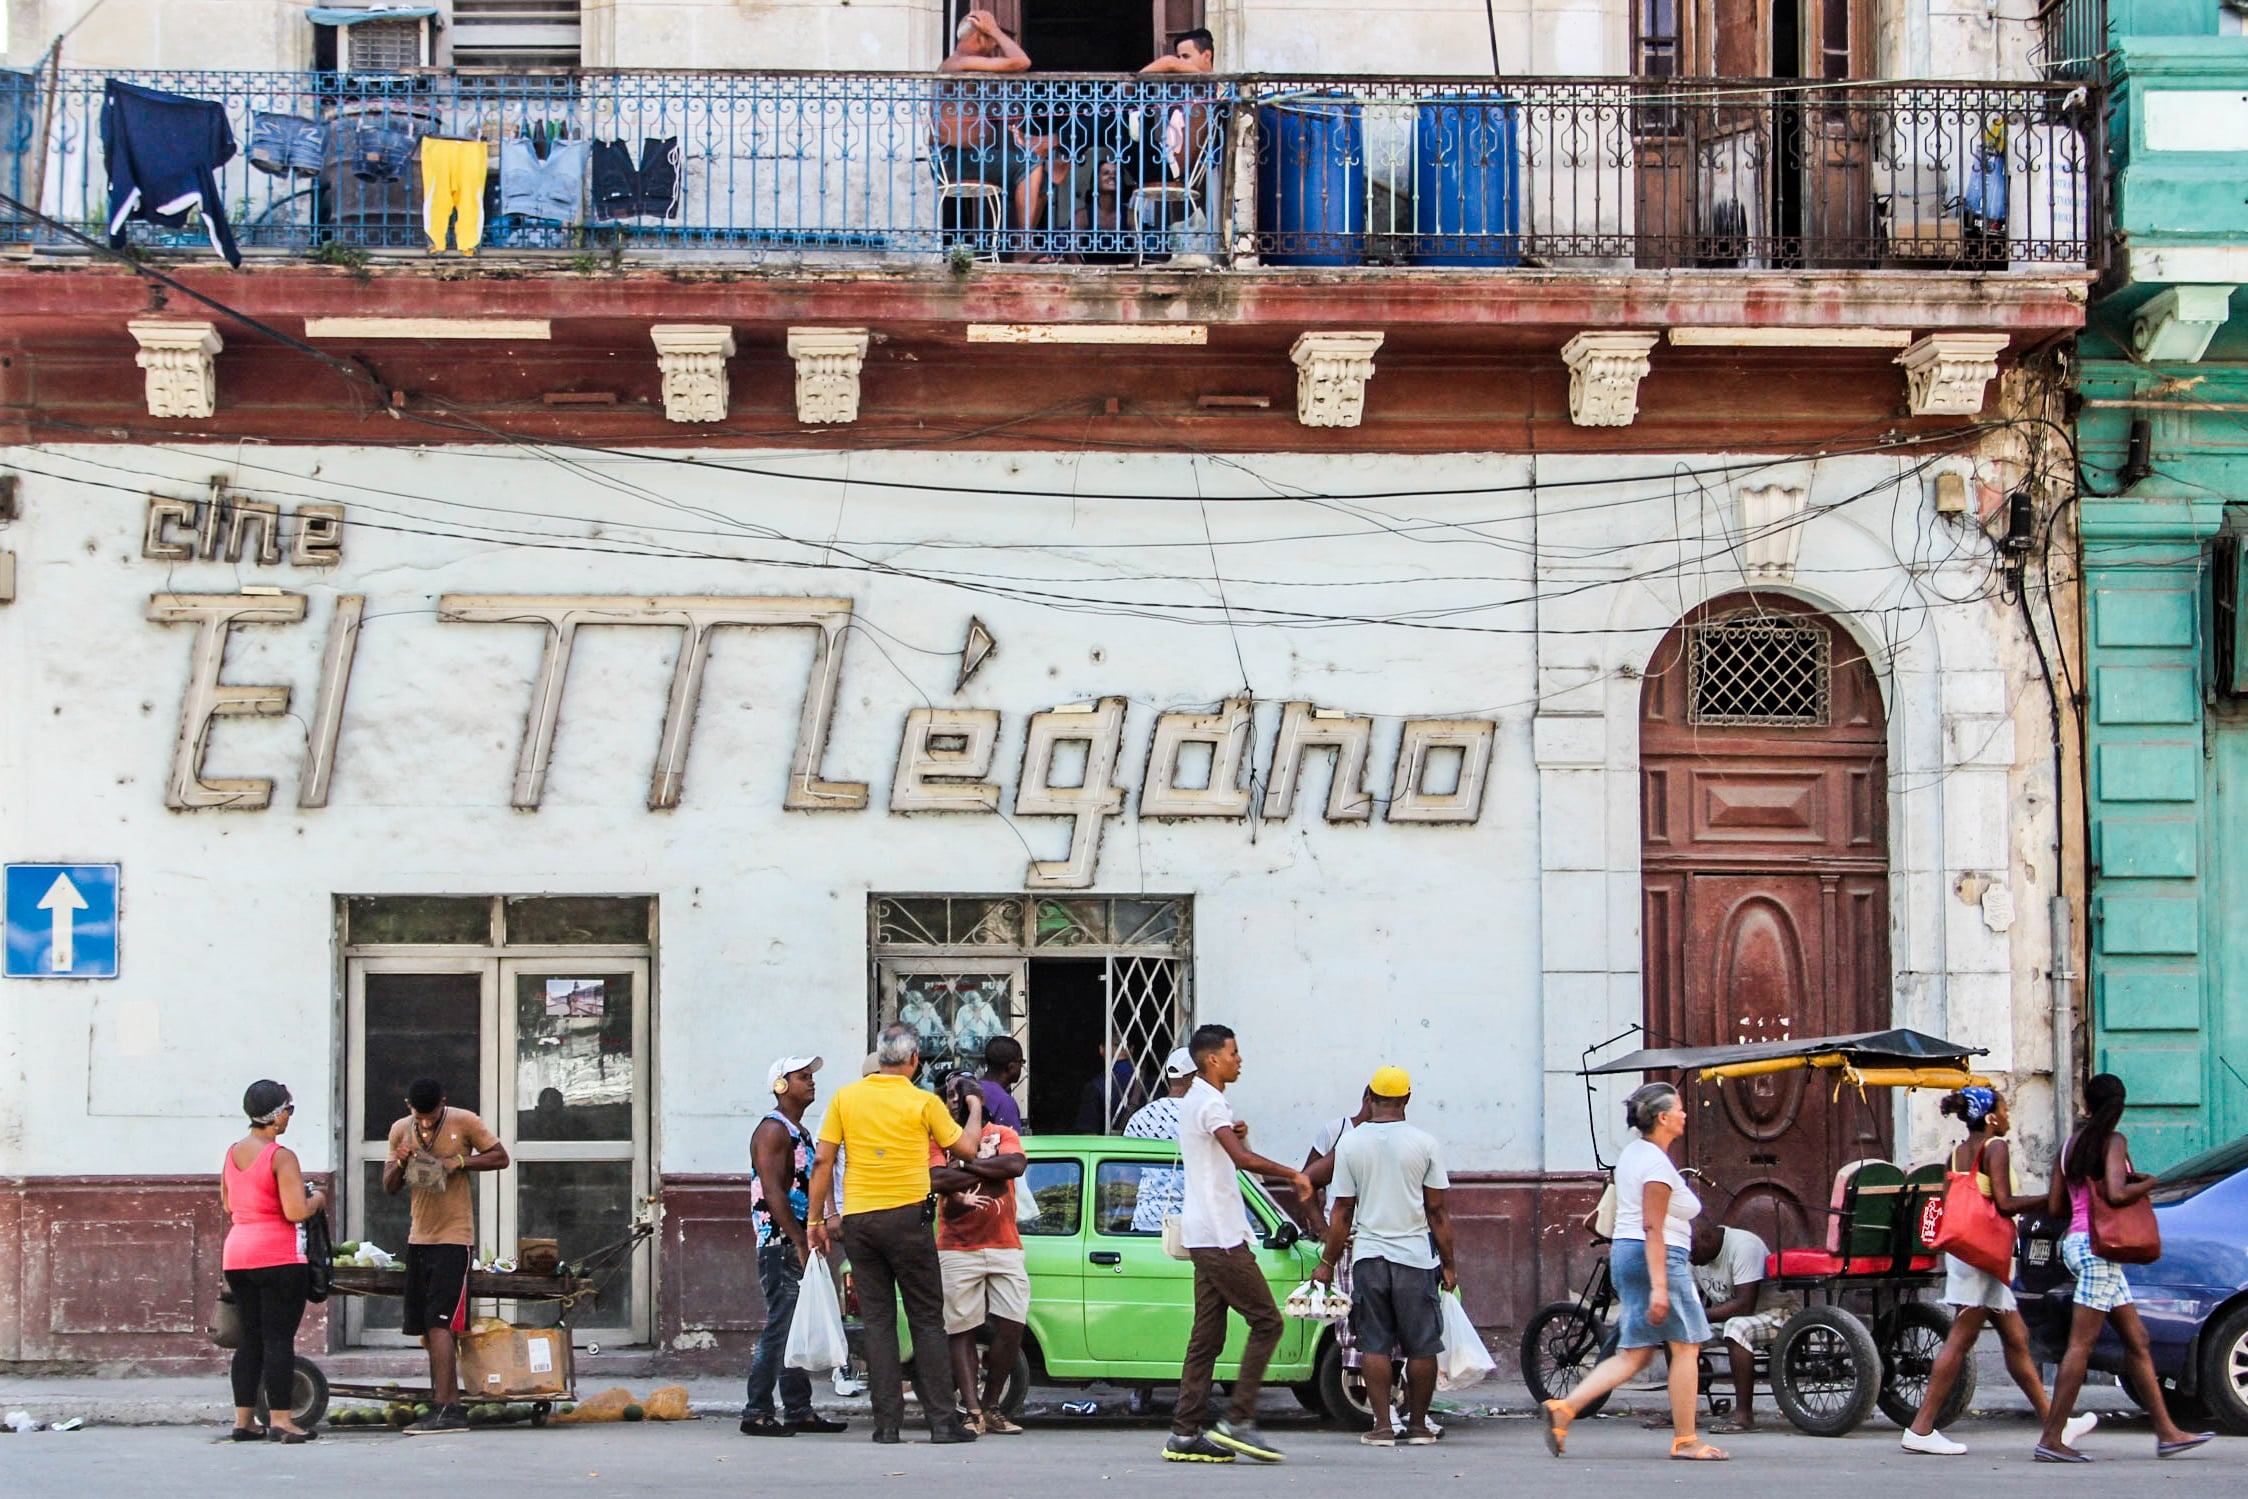 """Outside a cinema in Havana, Cuba.   In October 2013, the Cuban government banned privately run cinemas. The state closed many 2D and 3D salons in homes and restaurants. Although the communist nation has relaxed restrictions against the private sector in the past decade, the government announced in the state run newspaper Granma it needed to bring """"order"""" to the management of independent businesse  s. According to the BBC, government run cinemas shy away from showing Hollywood and other mainstream films. More recently, the NY Times reported that Miguel Coyula, a Cuban filmmaker, had his crow-funding campaign suspended on Indiegogo. After he raised US$5200, the website determined that transferring funds to Cuba or a Cuban resident would violate the United States' economic embargo. The lift of the U.S. sanctions against Cuba will change the face of independent Cuban cinema. Film-makers will be able to receive financial investment directly from the U.S. and travel freely between the two nations."""